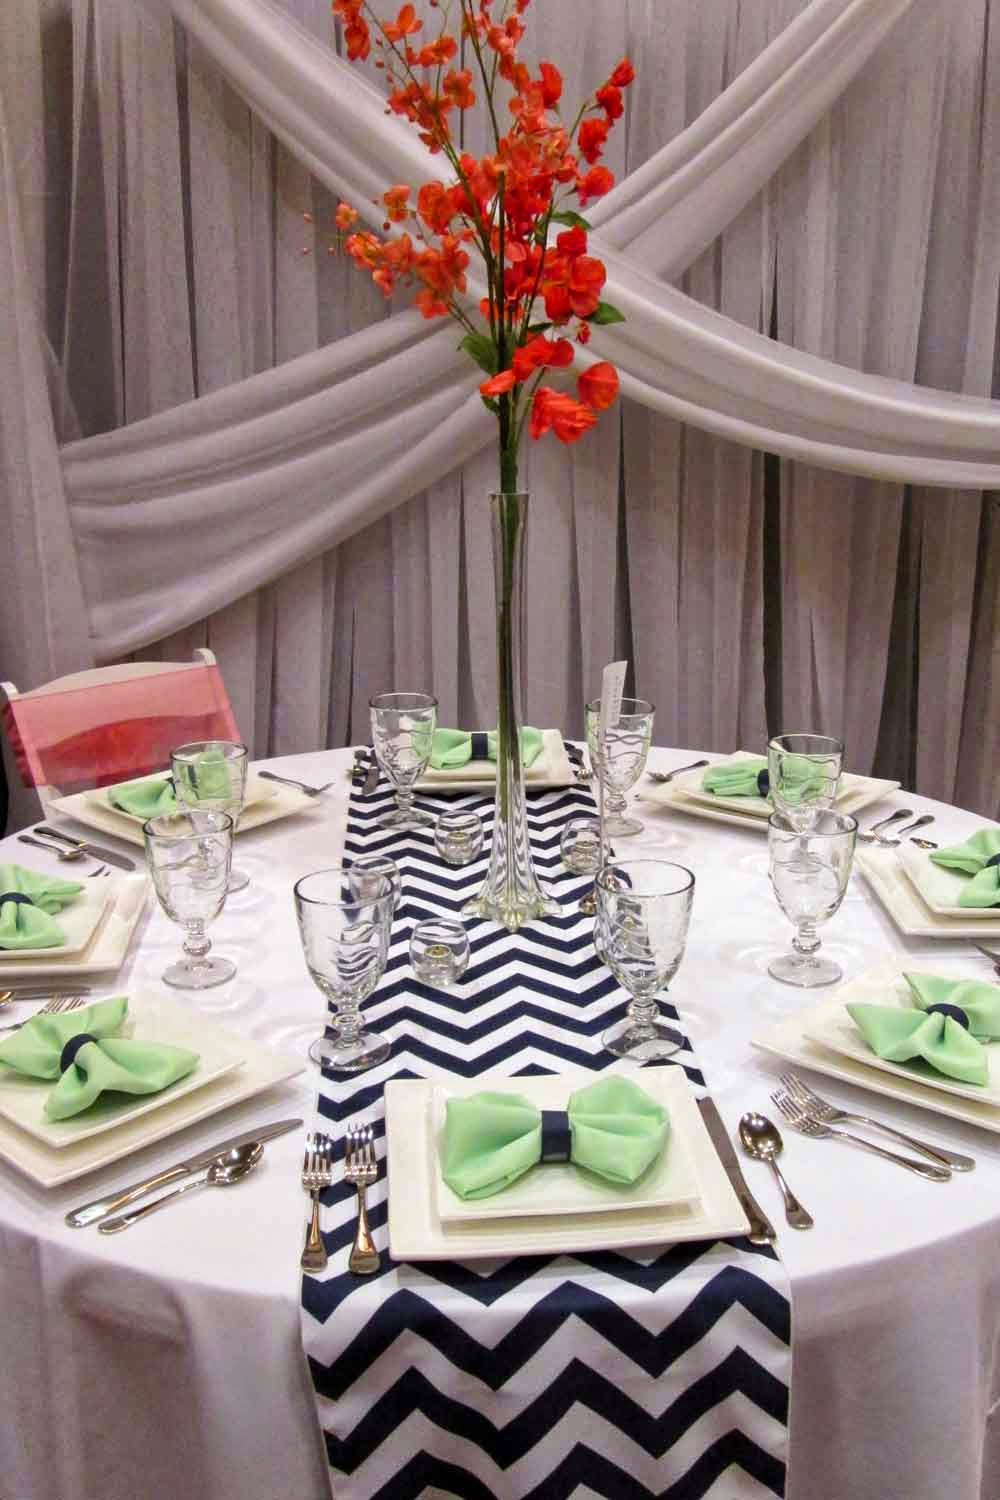 Planning tip 15 diy wedding centerpieces elite events rental twist calla lillies inside a 27 trumpet vase rents for 10 or a 32 pilsner vase rents for 10 combine two vases for a bigger impact reviewsmspy